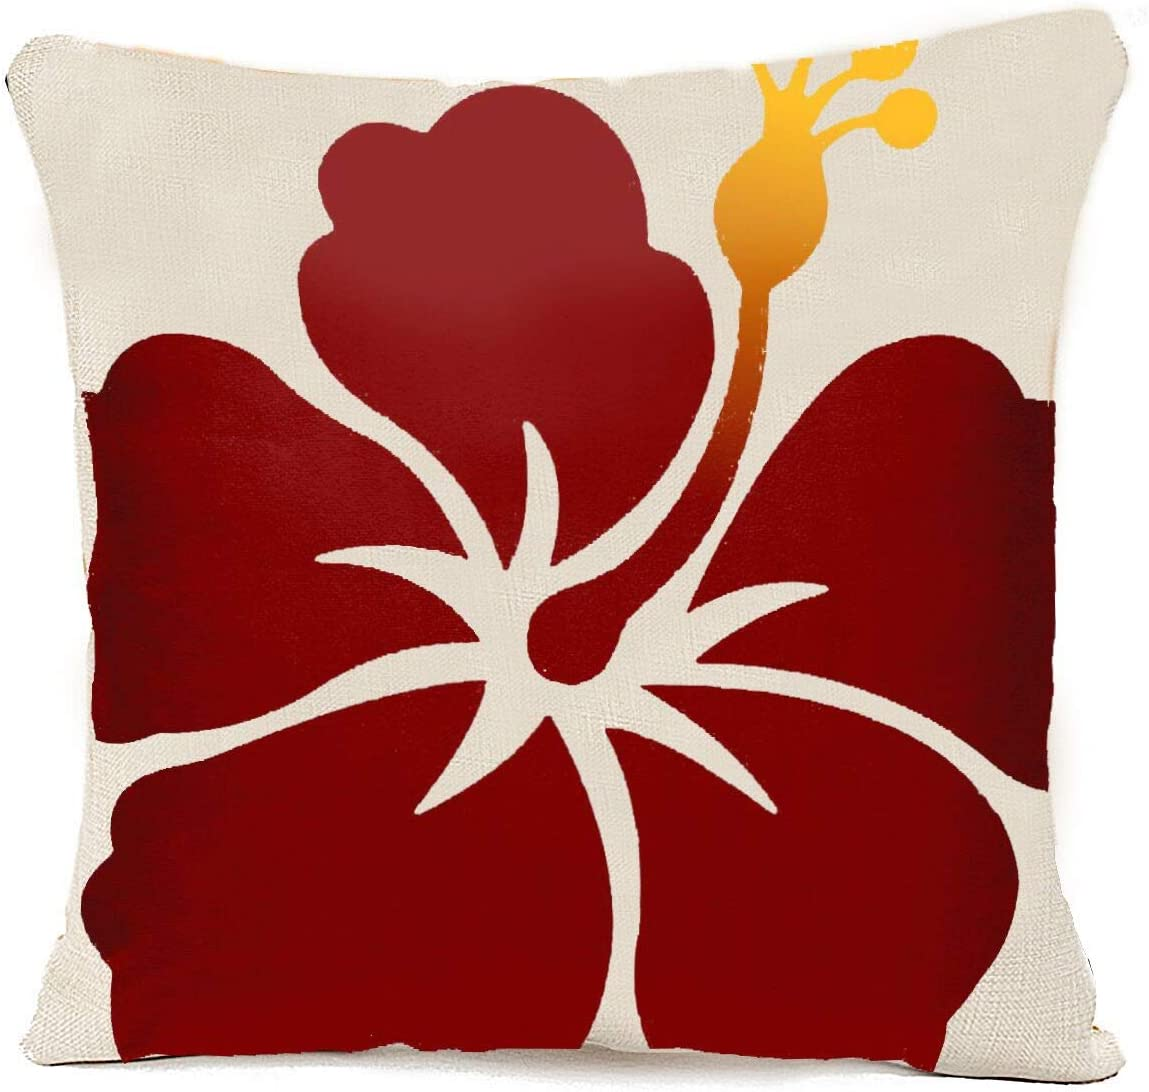 ZHONGH Floral Hawaii Hawaiian Hibiscus Flowers on Tropical Home Decor Blend Linen Throw Pillow Cover for Couch Sofa Pillows Case Cushion Covers Two Sides Printed 18x18 Inch 1 Pack